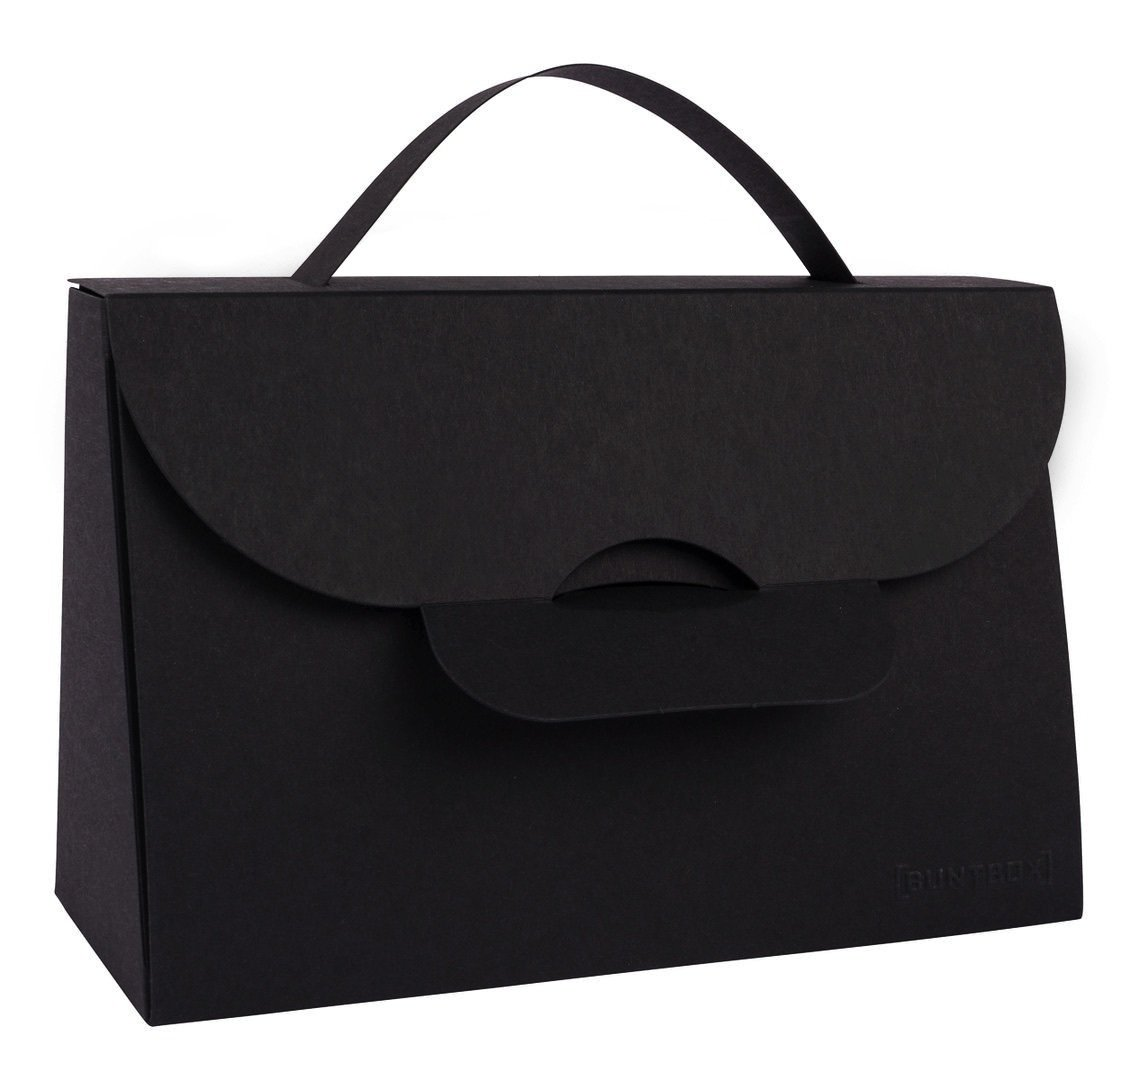 BUNTBOX Handbag M - Graphite